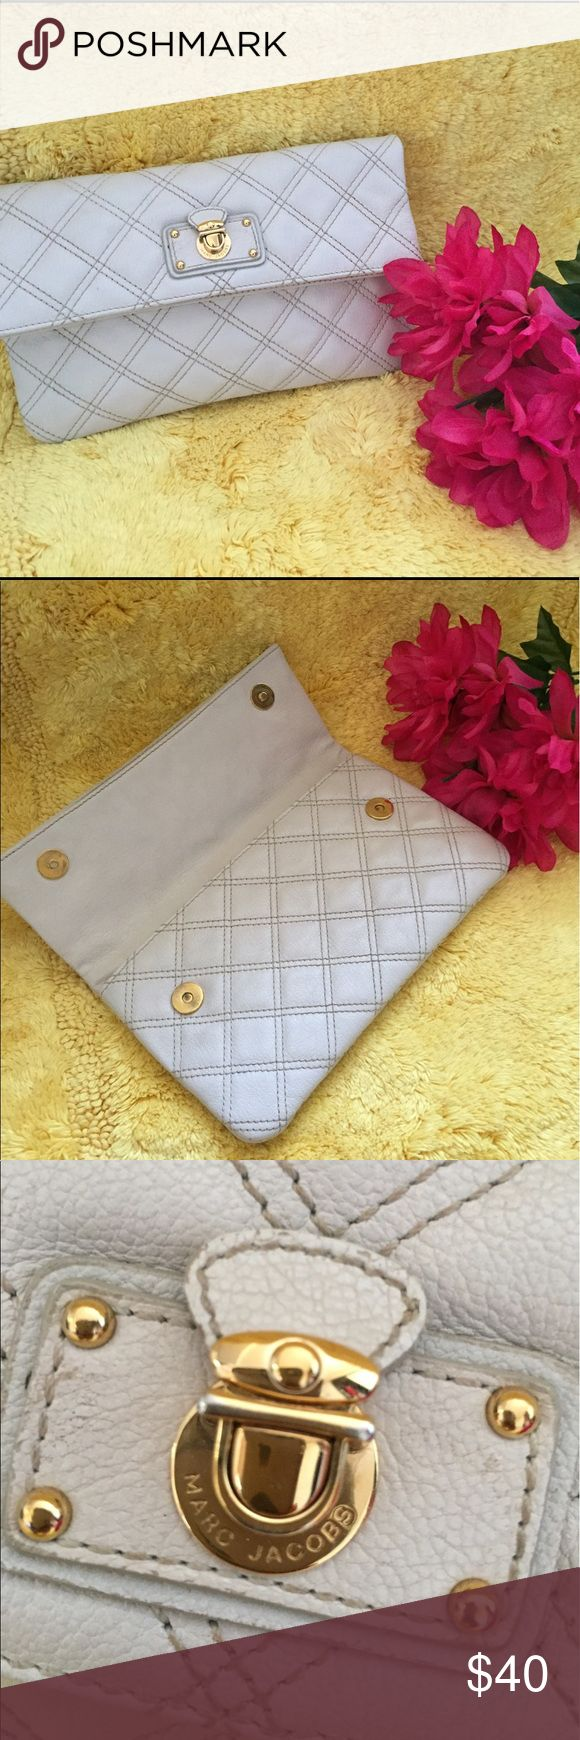 Marc Jacobs Quilted Cream Clutch Excellent used condition Marc Jacobs Bags Clutches & Wristlets